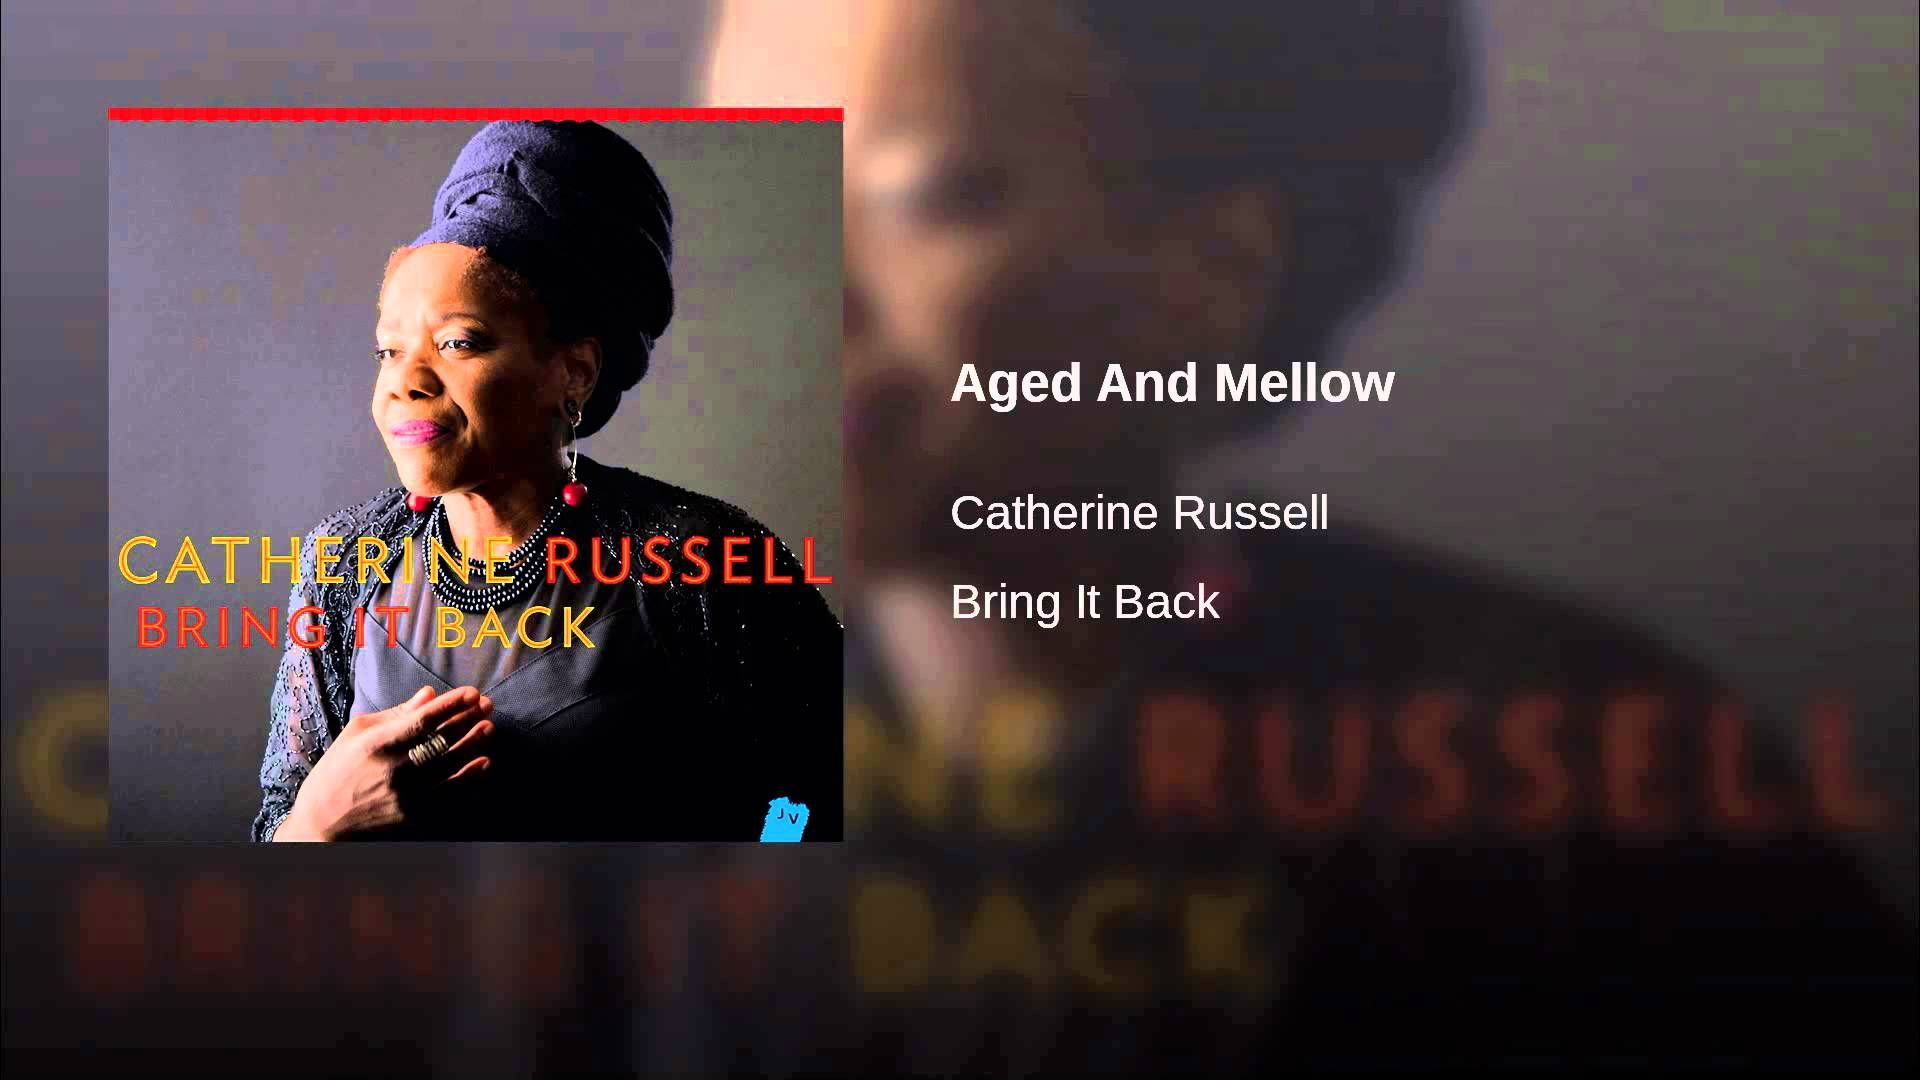 Aged And Mellow Bring it on, Bring back